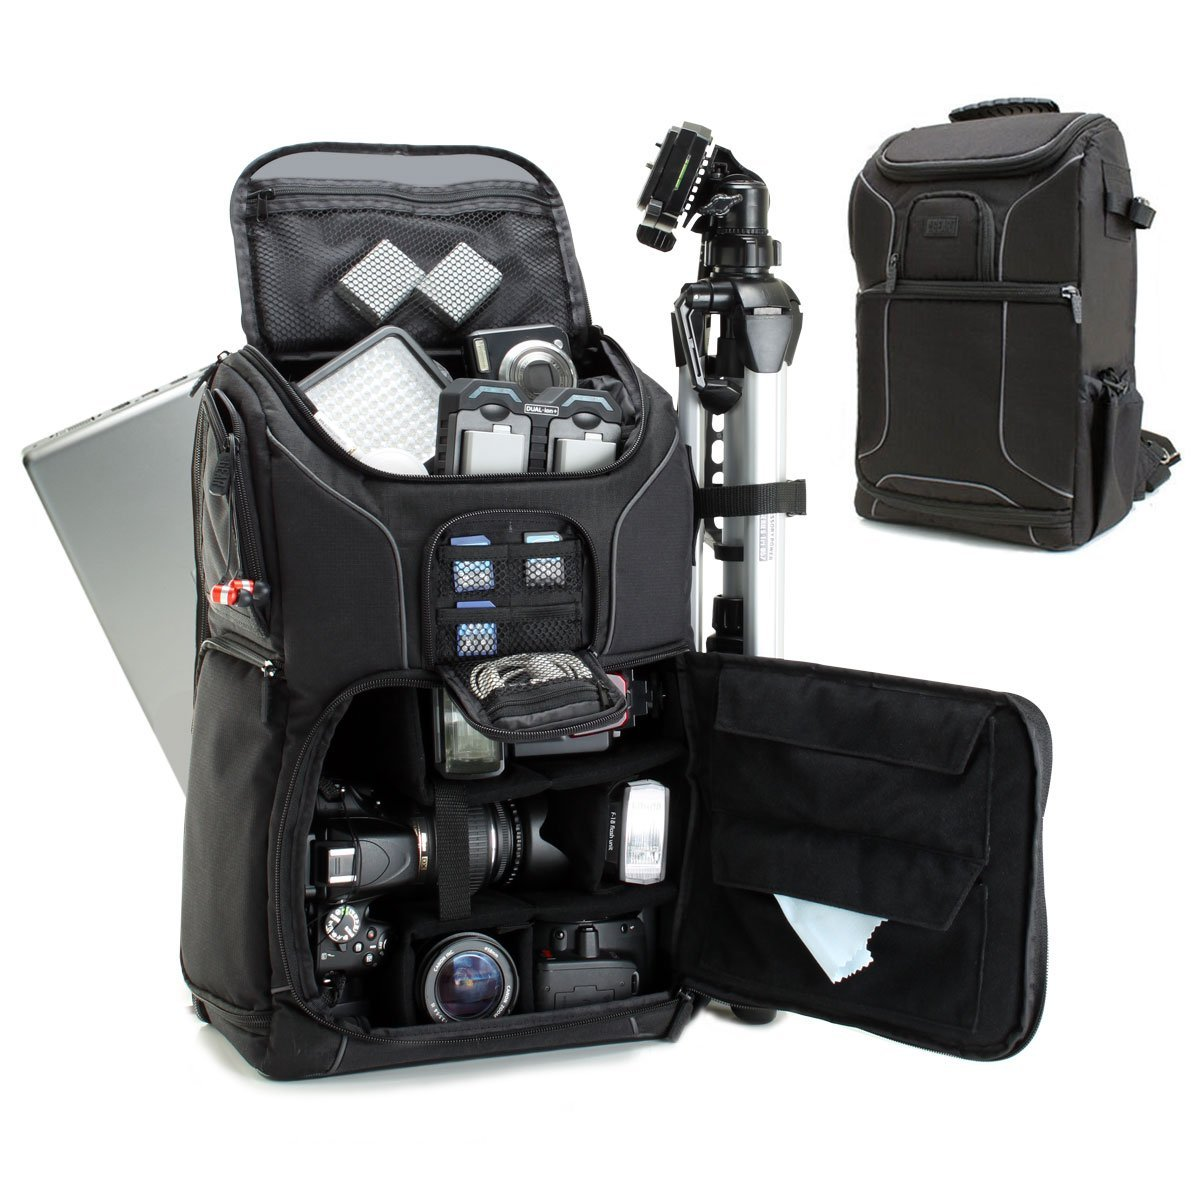 USA Gear Backpack - Gifts for Photographers